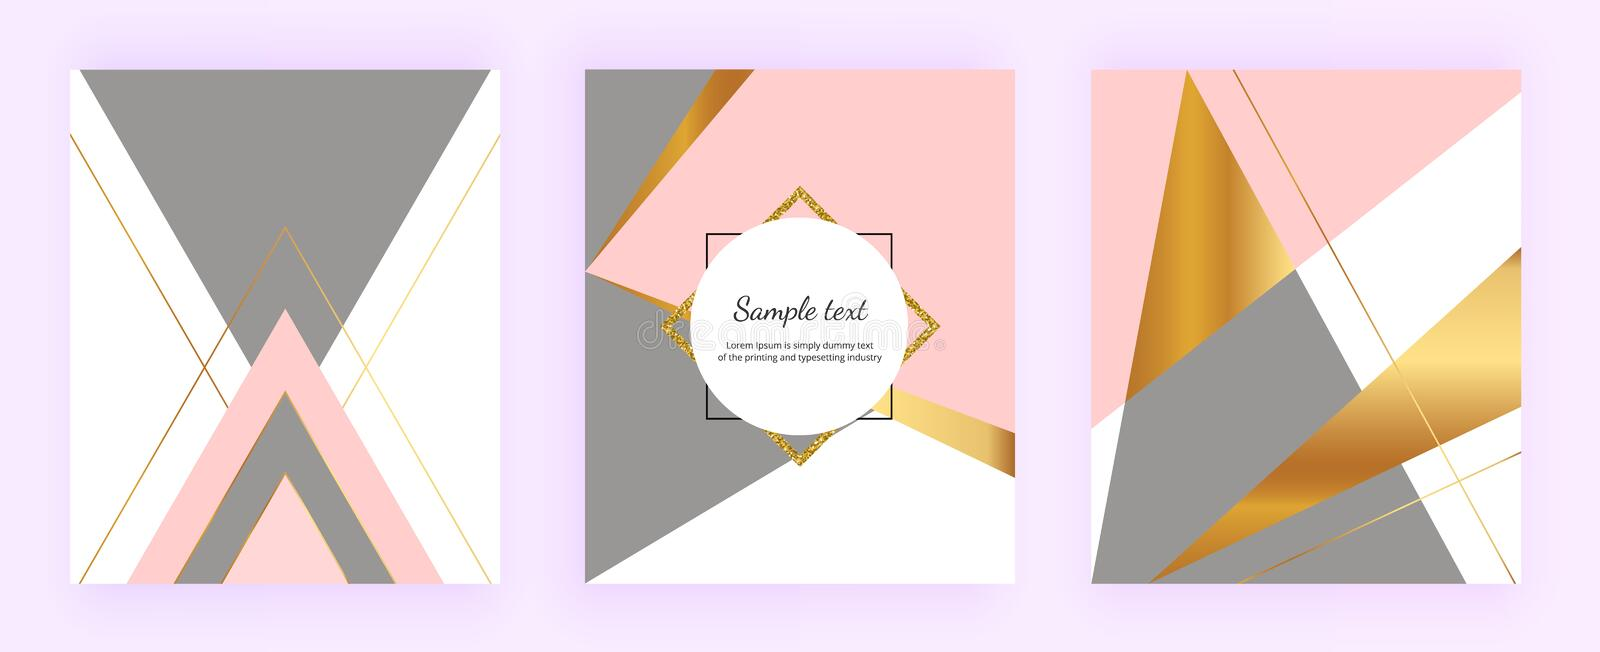 Geometric cover designs, triangles with gold, pink and grey colors background. Template for design invitation, card, banner, weddi royalty free illustration